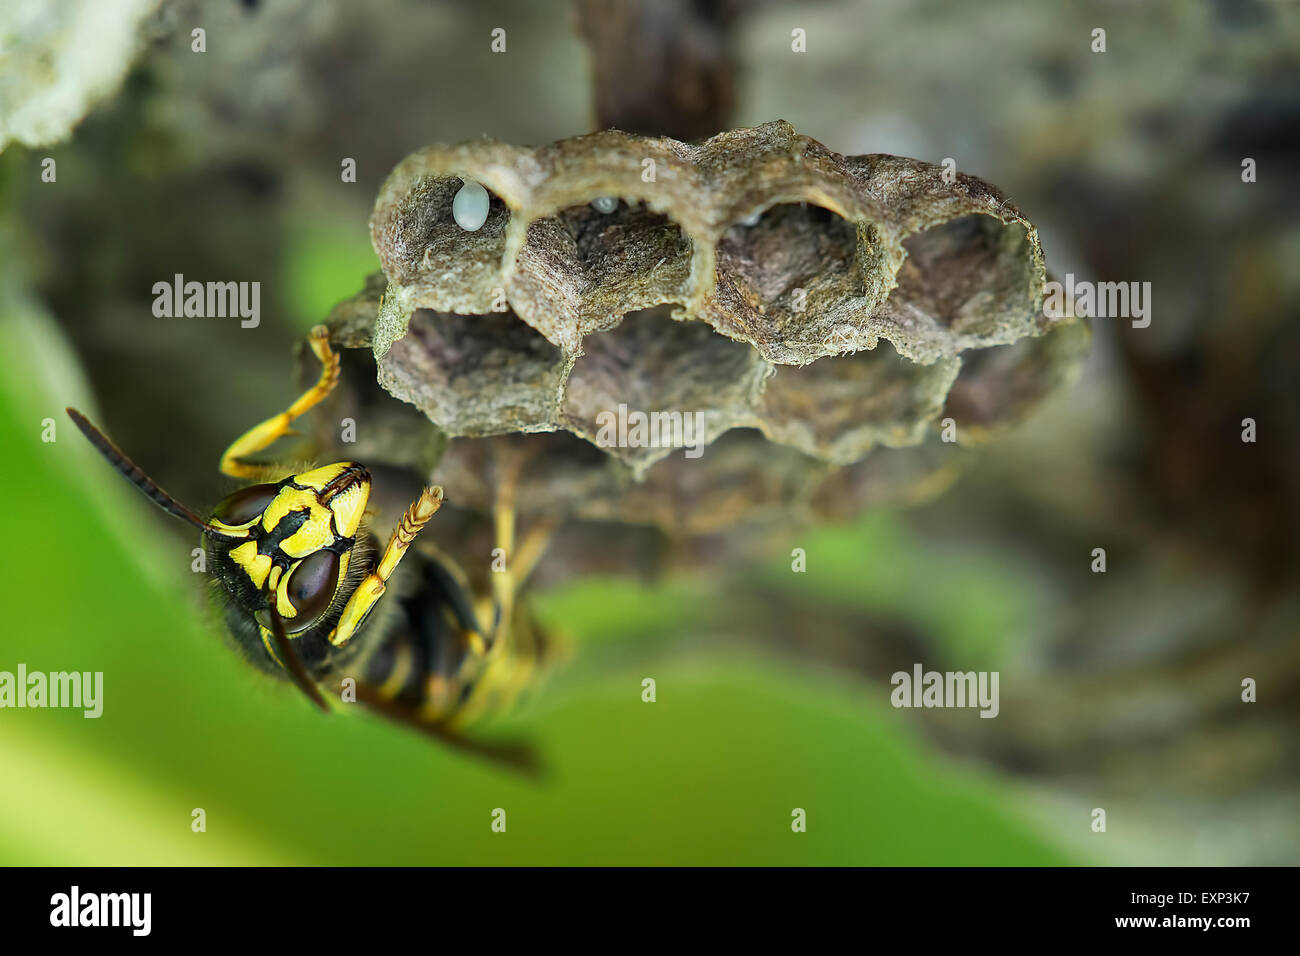 Common Wasp (Vespula vulgaris), brood comb with egg, Saxony-Anhalt, Germany Stock Photo